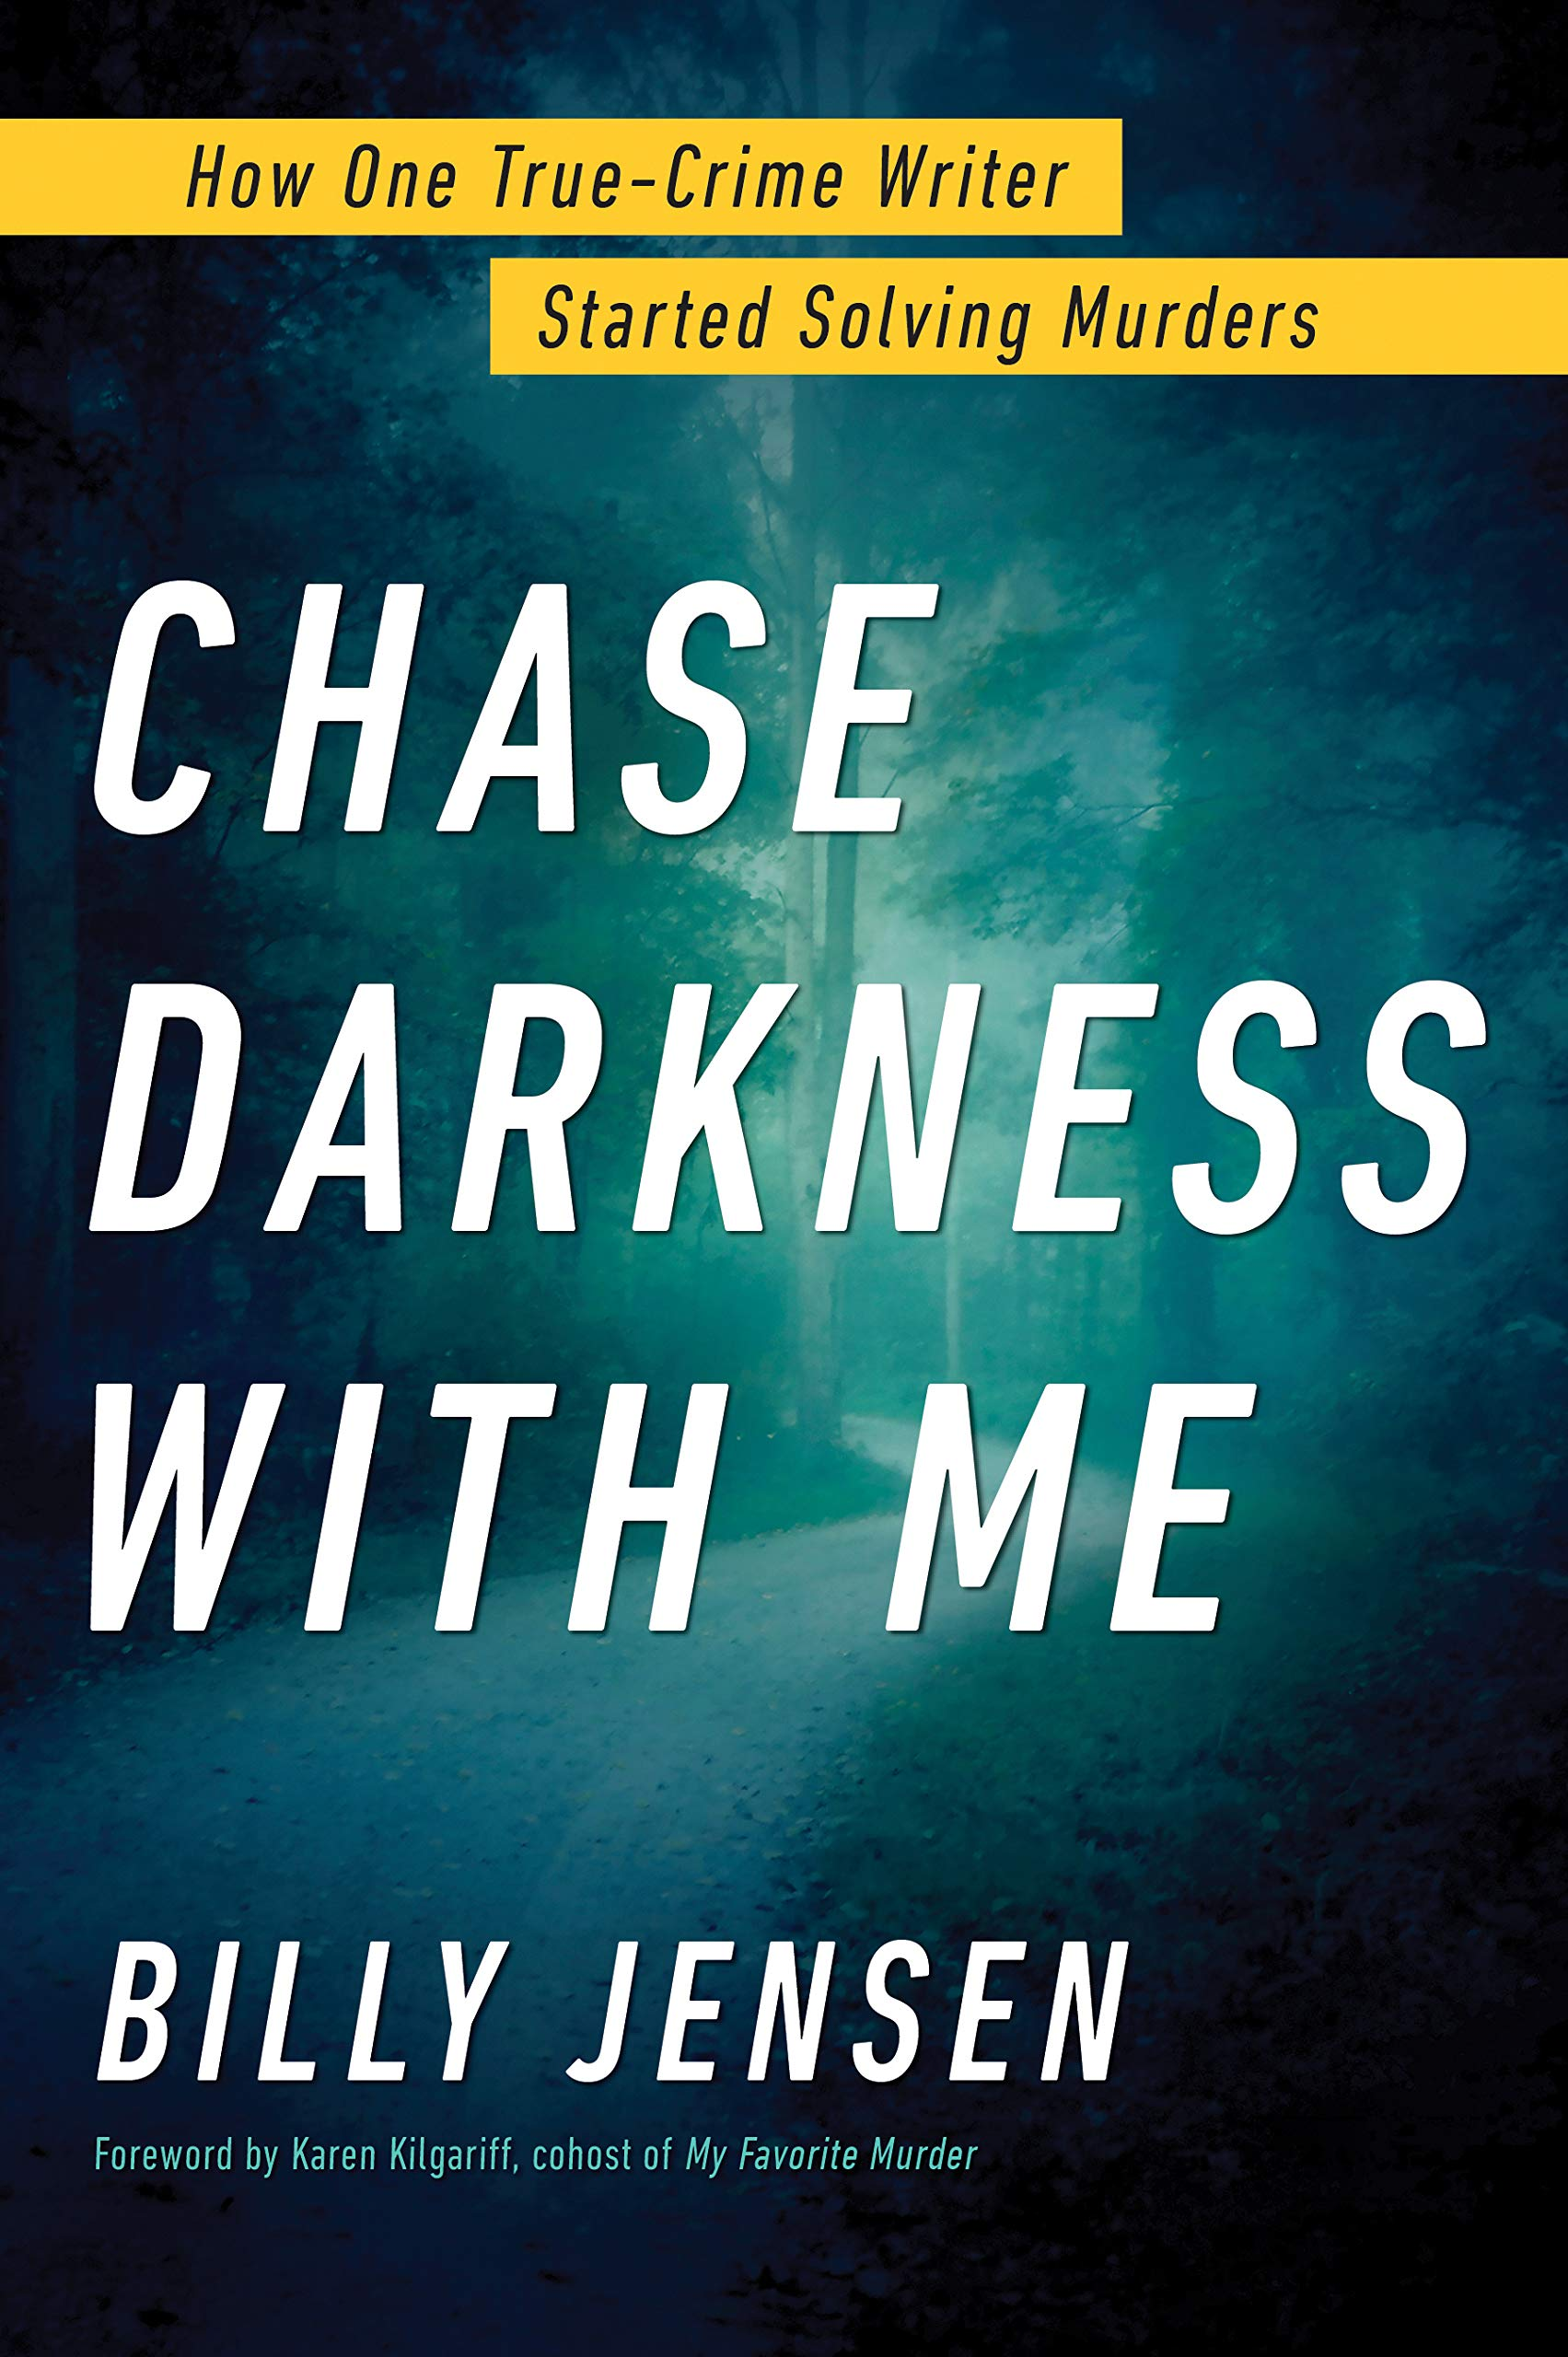 Chase Darkness with Me: How One True-Crime Writer Started Solving Murders by Sourcebooks